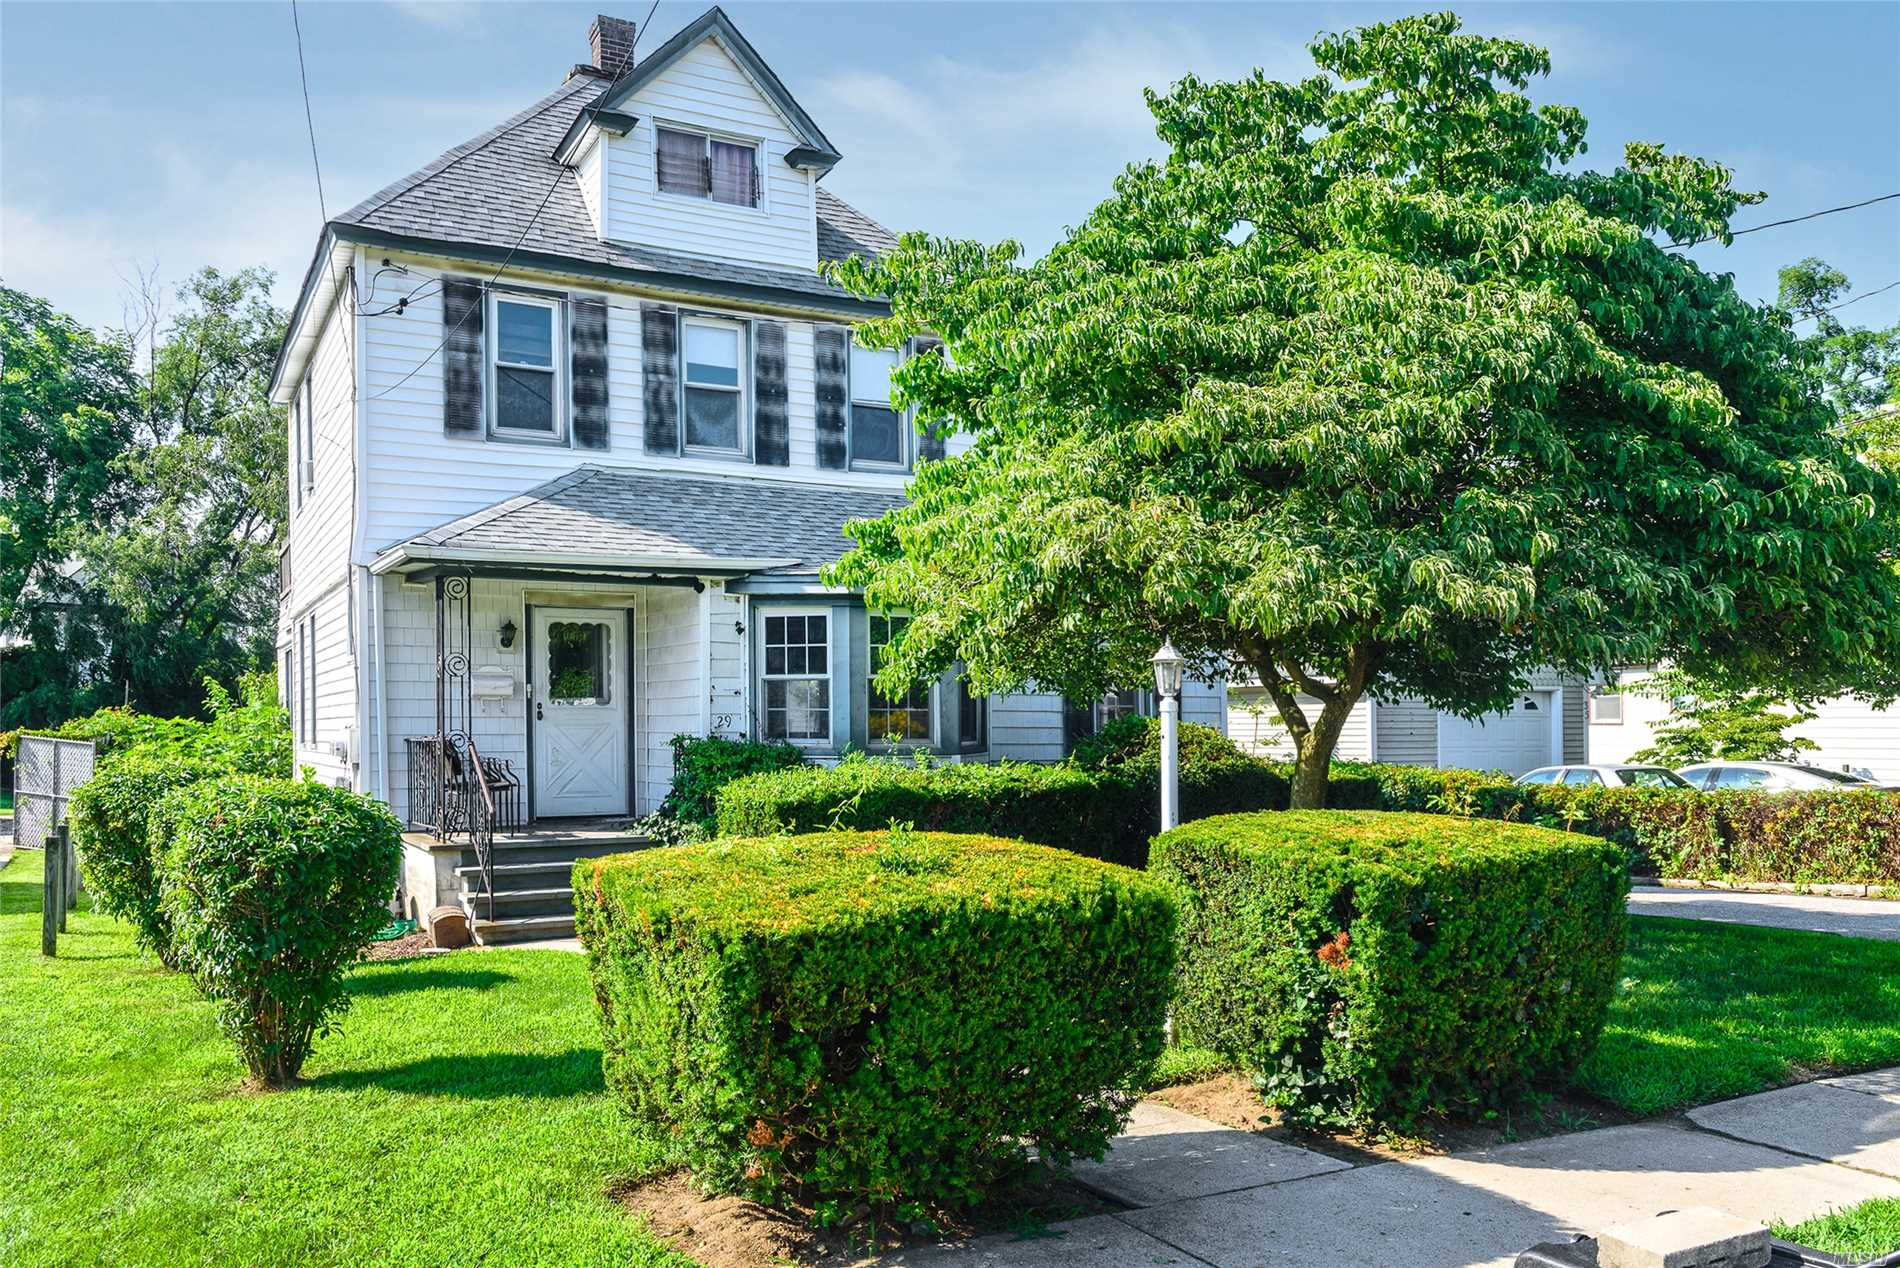 Legal 2-Family. 1st Flr: Entry Foyer, Spacious Living Rm, Formal Dining Rm, Eik, 2 Bdrms, Office, Bath, Laundry. 2nd Flr: Living Rm, Open Eik W/Island, 2 Bdrms, Bath & Walk-Up Attic W/Walk-In-Closet. Full Bsmnt, 2 Electric Panels, Cement Patio, Det Garage, Long Driveway, 170 Ft Deep Yard W/Fig & Chestnut Trees, Low Taxes & Convenient To Schools, Lirr, Shopping, Highways & Transportation. Needs Some Updating - No Fha Loans Unless 203K Rehab Loan.